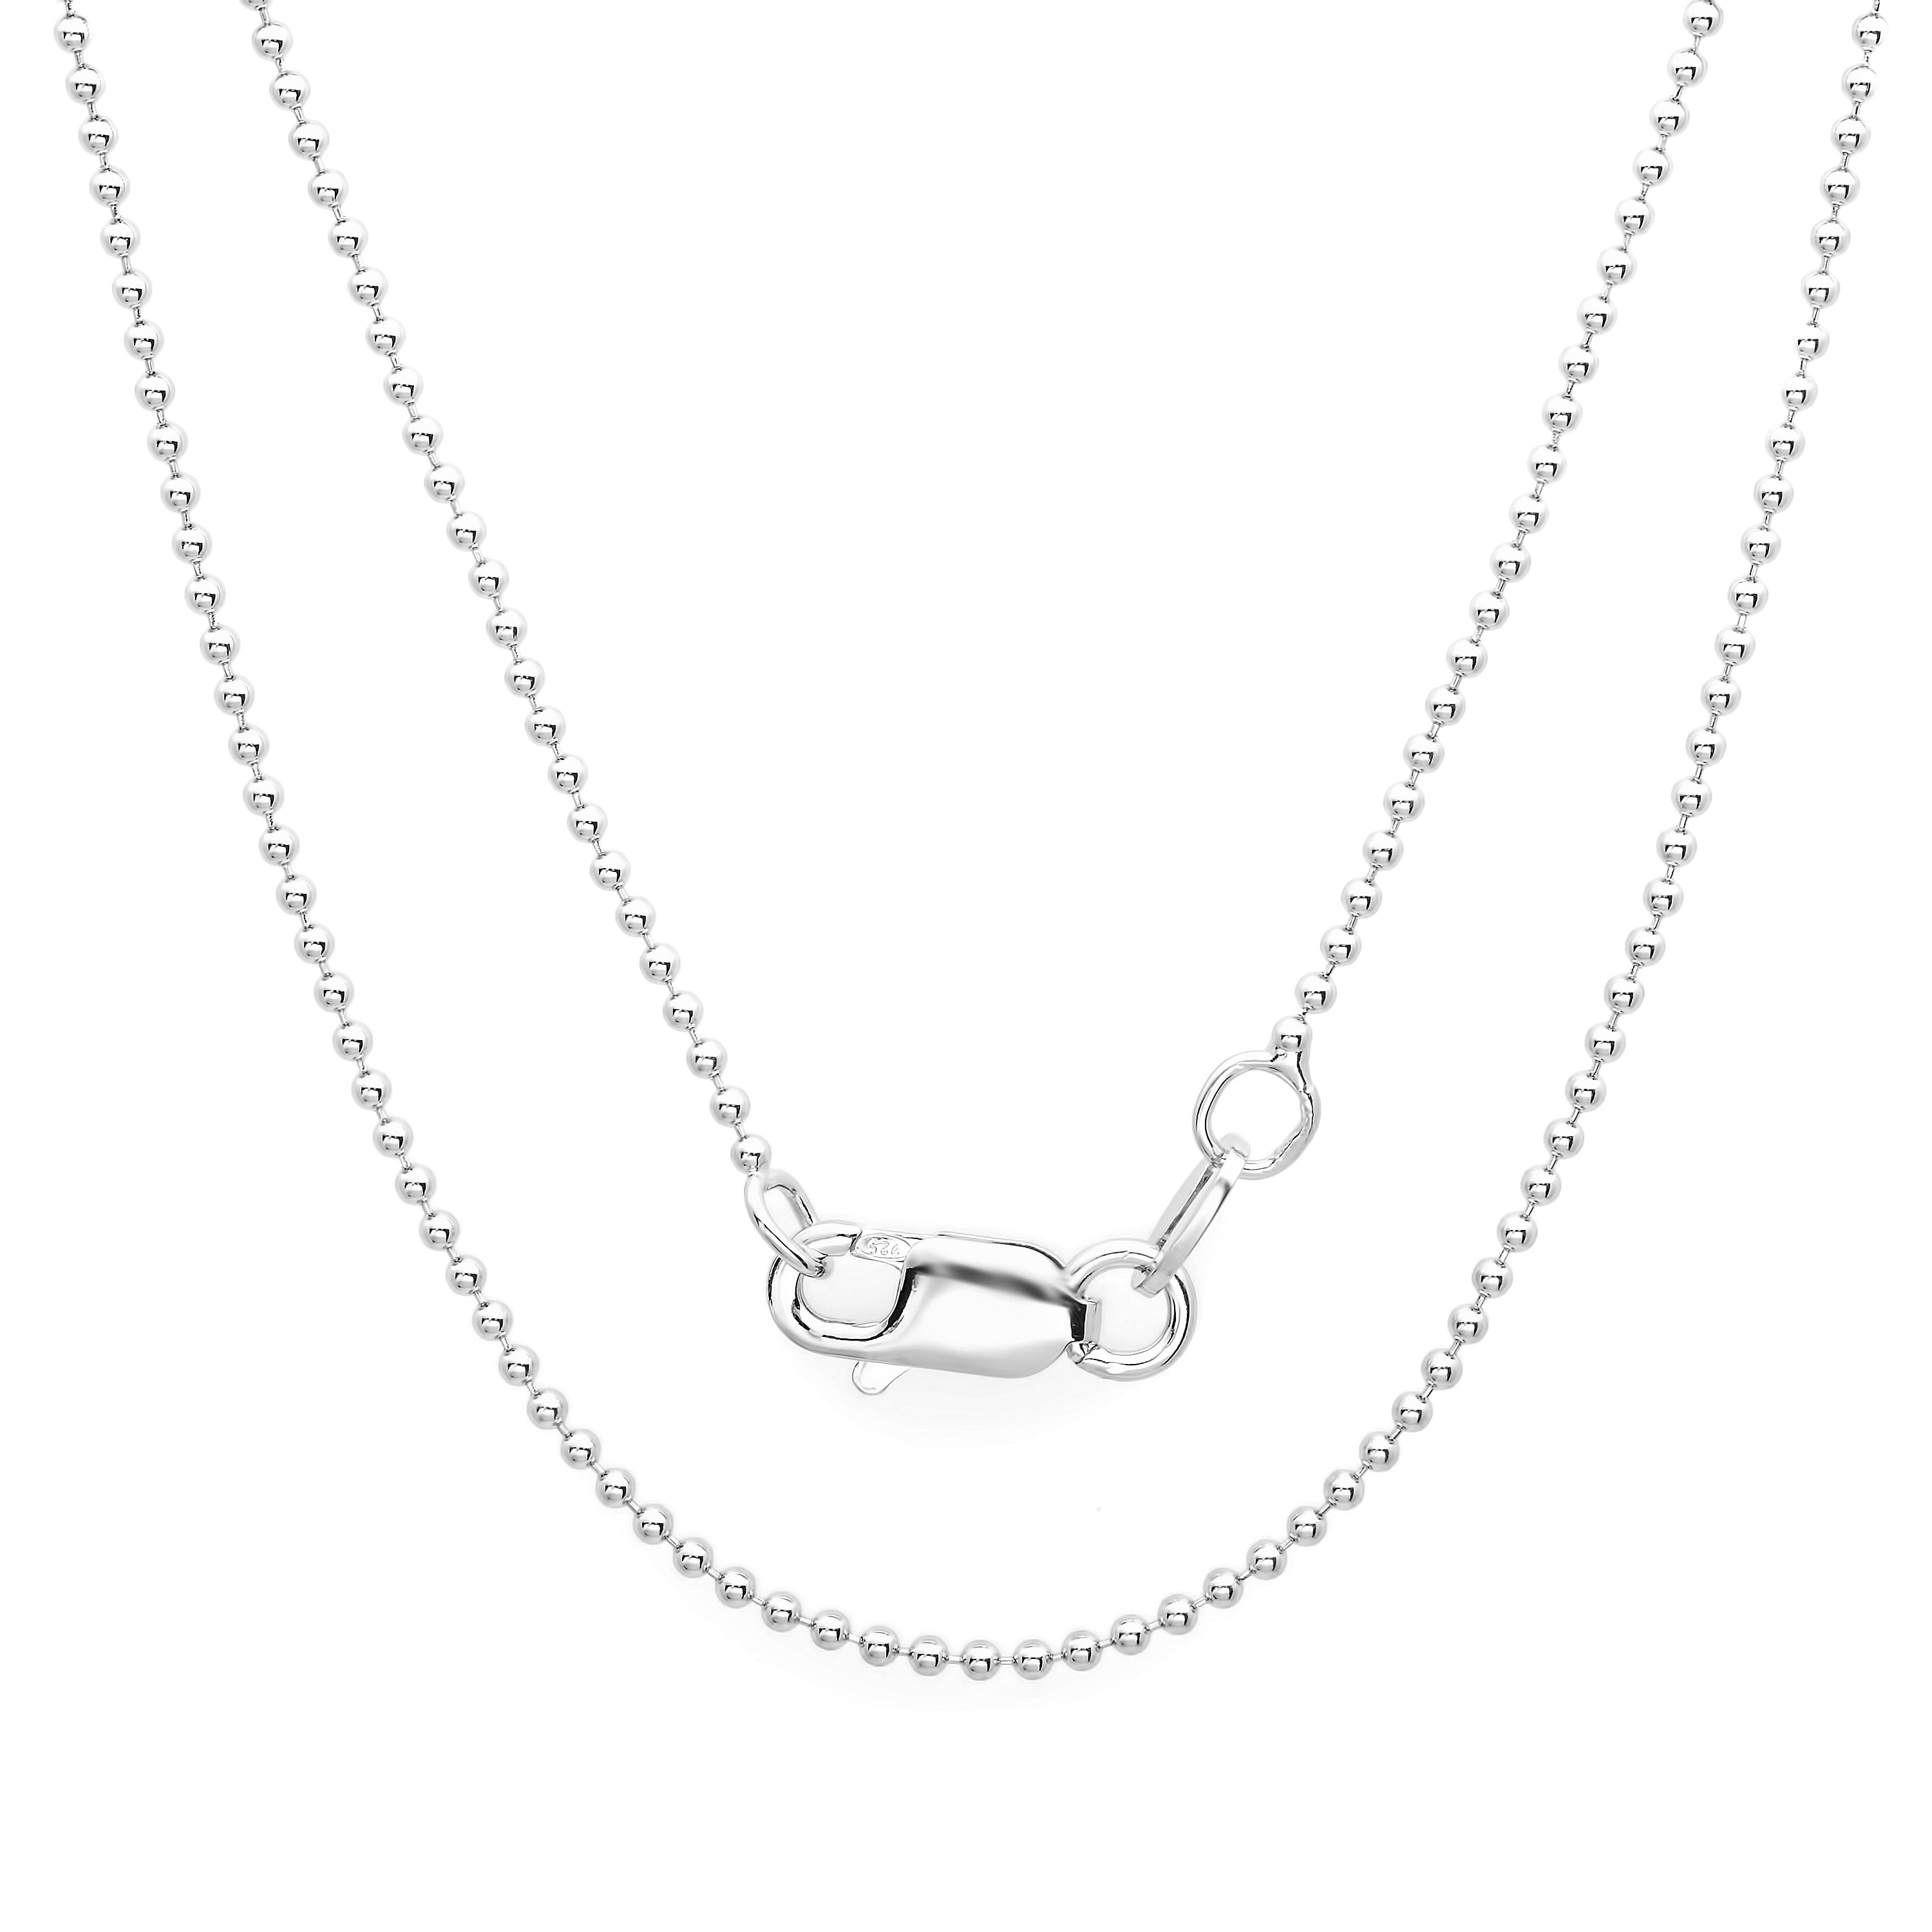 Solid 925 Sterling Silver 1.25mm Beaded Chain Necklace